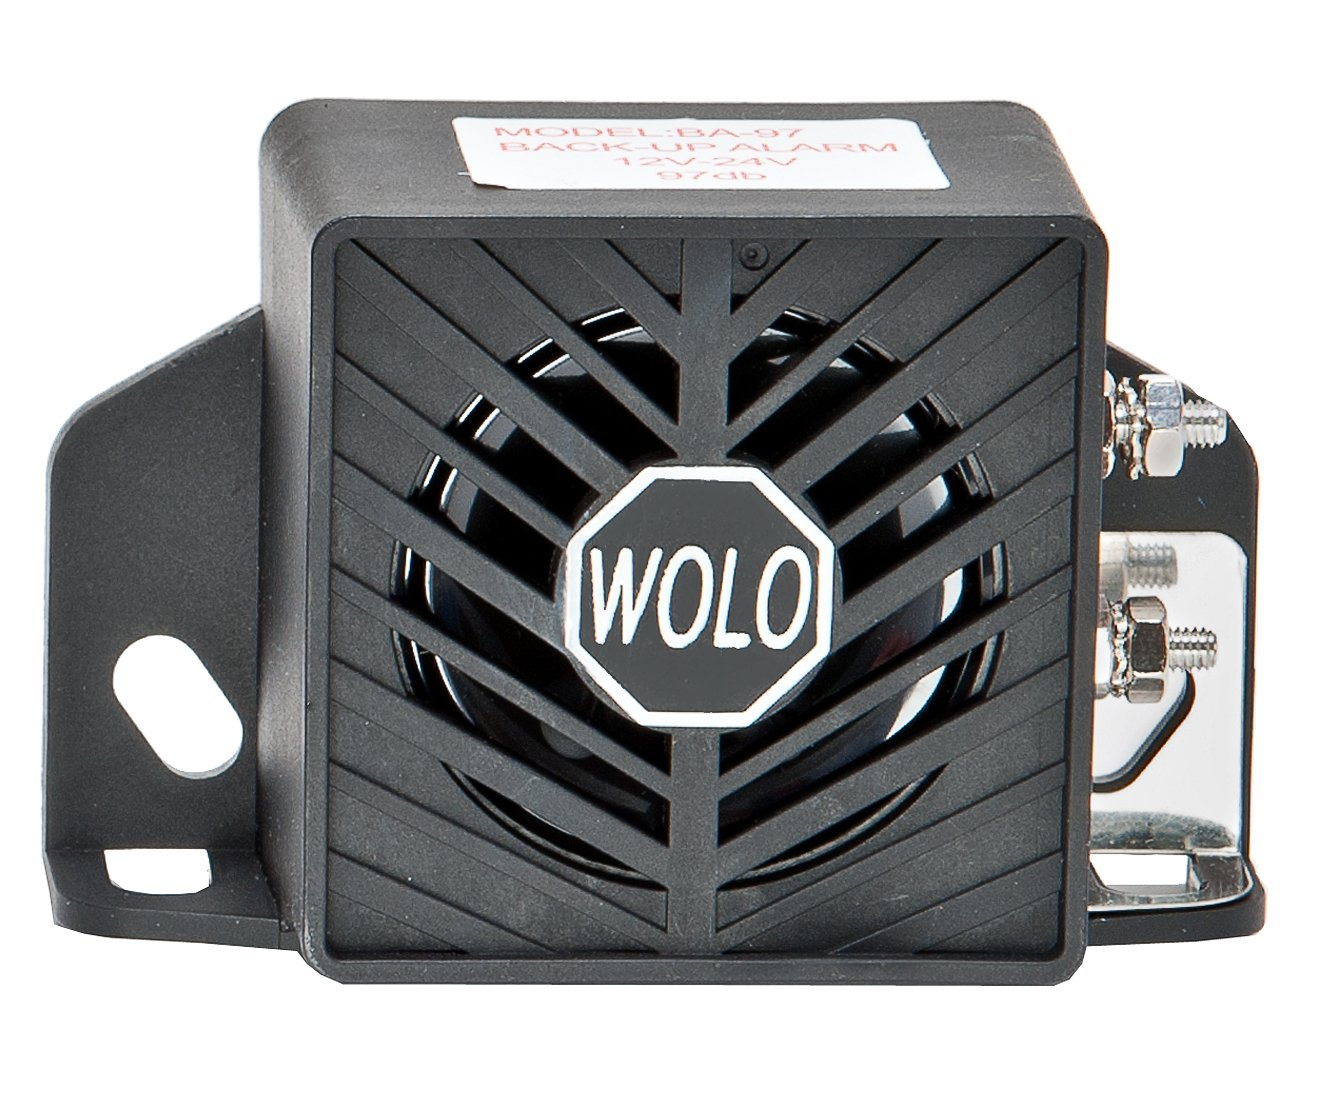 Wolo Model BA-97 Heavy Duty Commercial Grade Back-Up Alarm, Loud 97 Decibel, 12-24 Volt WOLQG